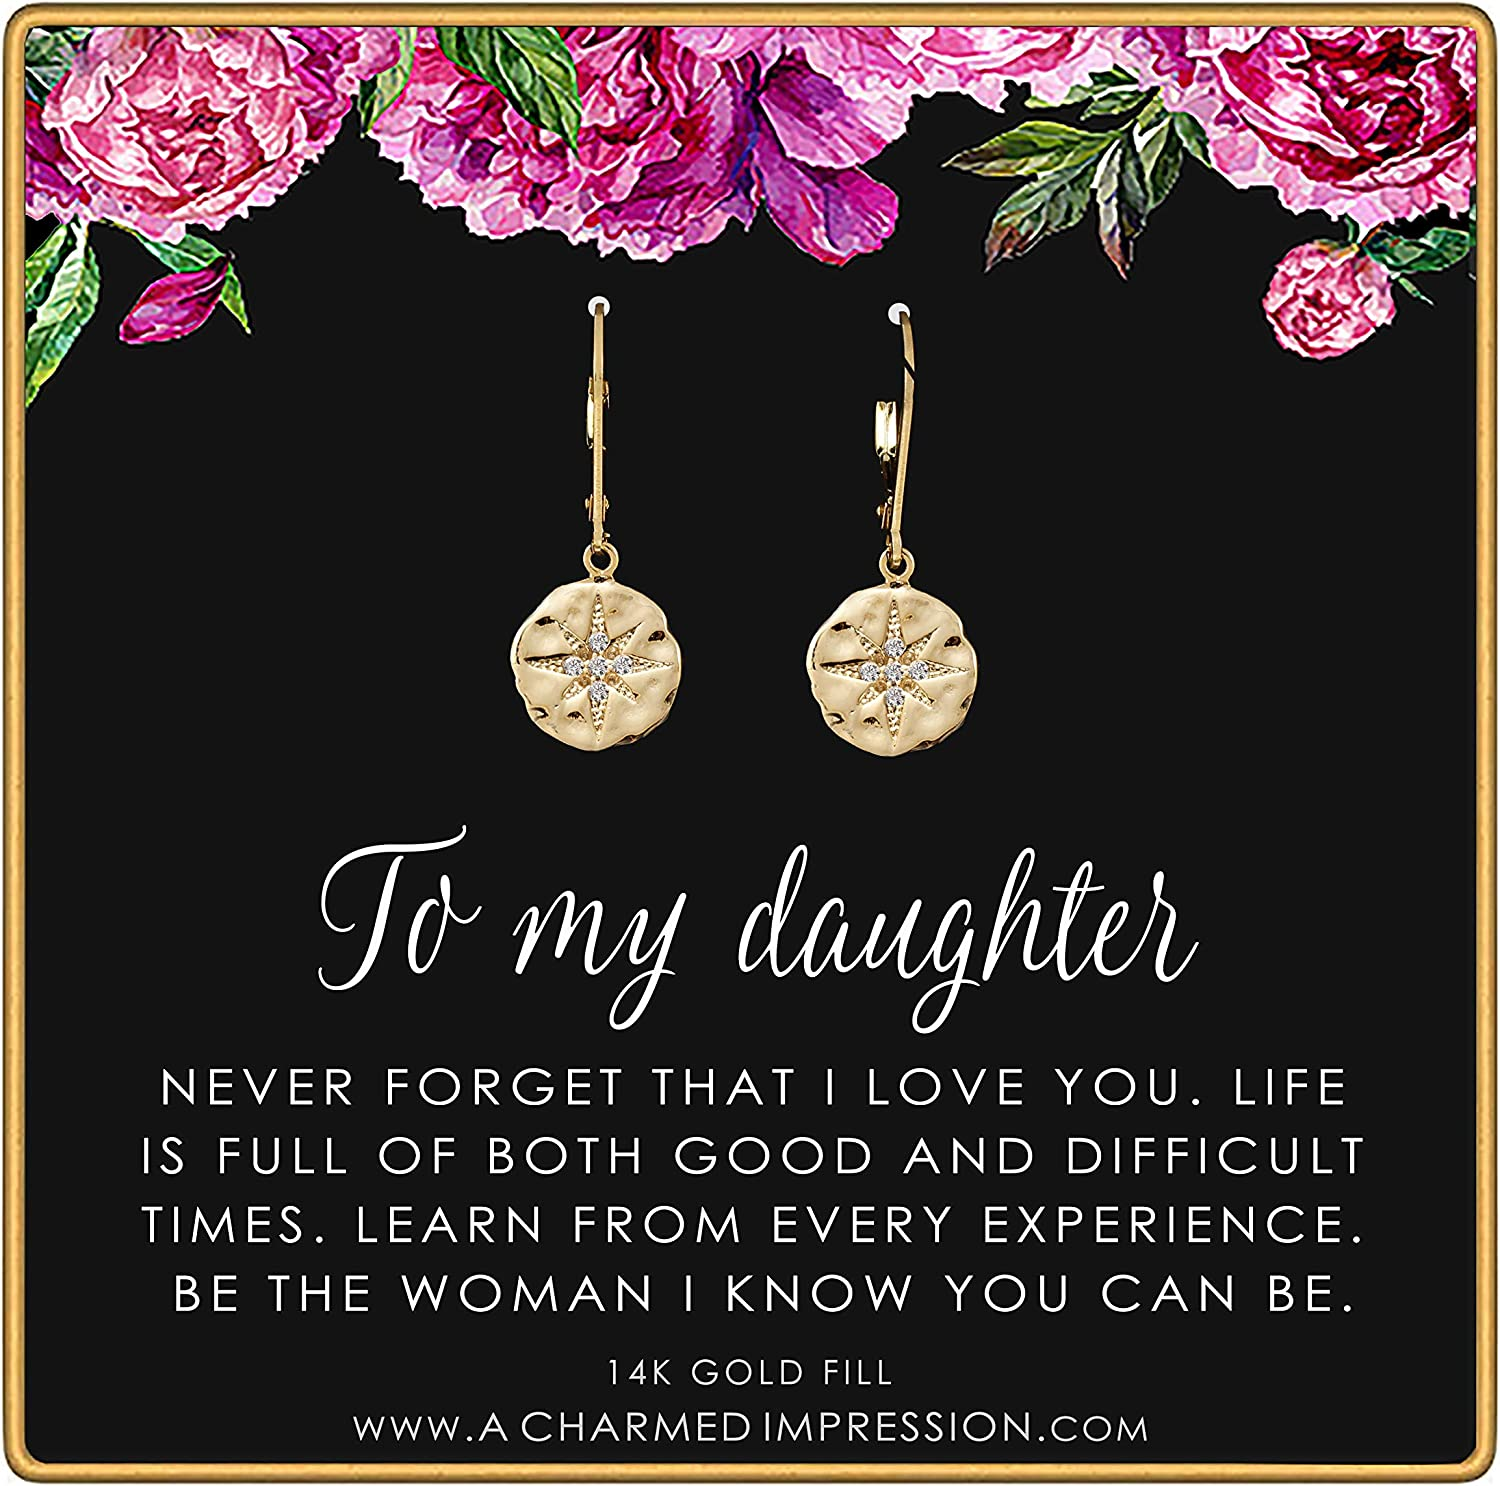 To My Daughter • Inspirational Max 48% OFF Earrings Gi Starburst OFFicial site Jewelry